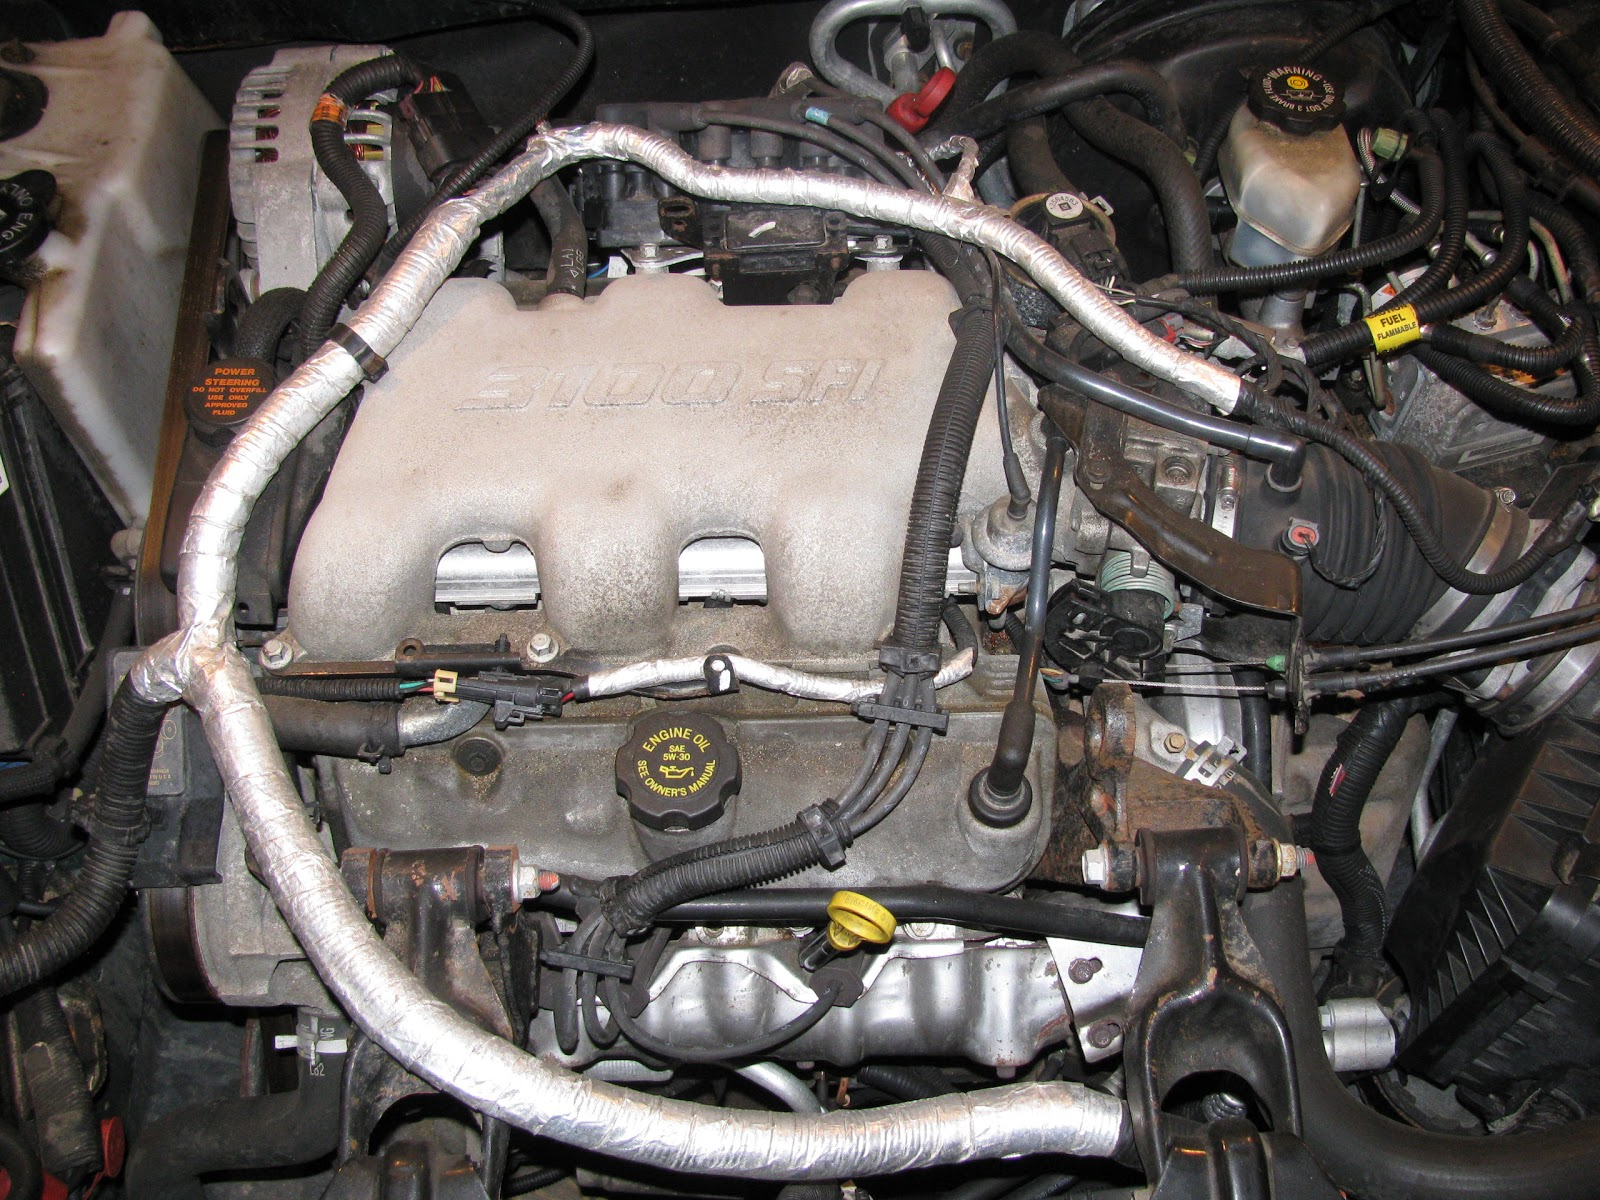 medium resolution of the original mechanic 3 1l engine gm replacing intake manifold 2002 pontiac grand prix intake manifold gasket diagram wiring